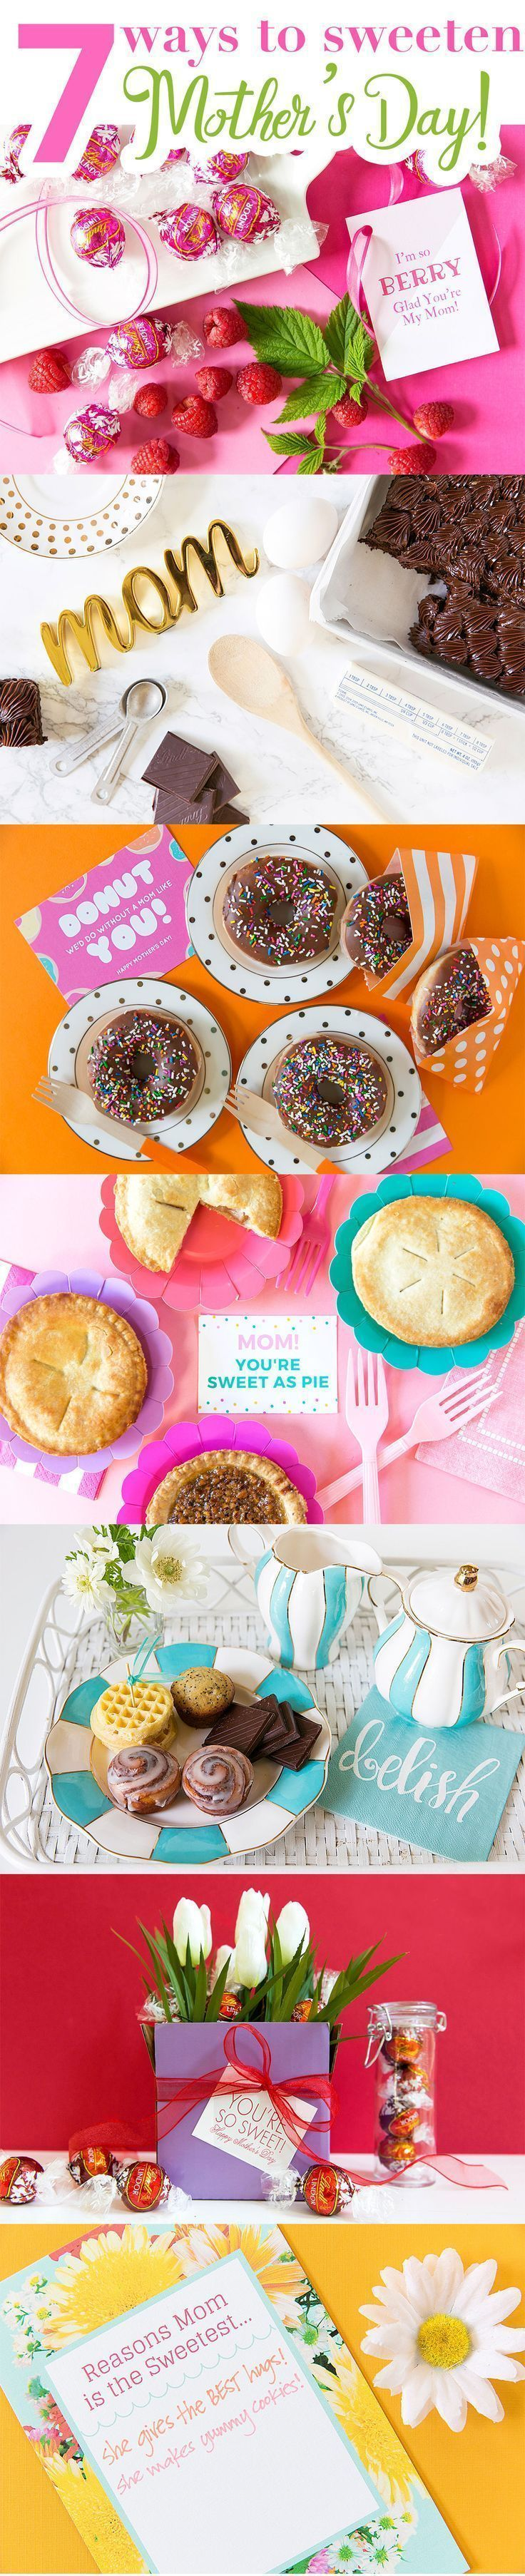 7 Ways to Sweeten Up Mother's Day